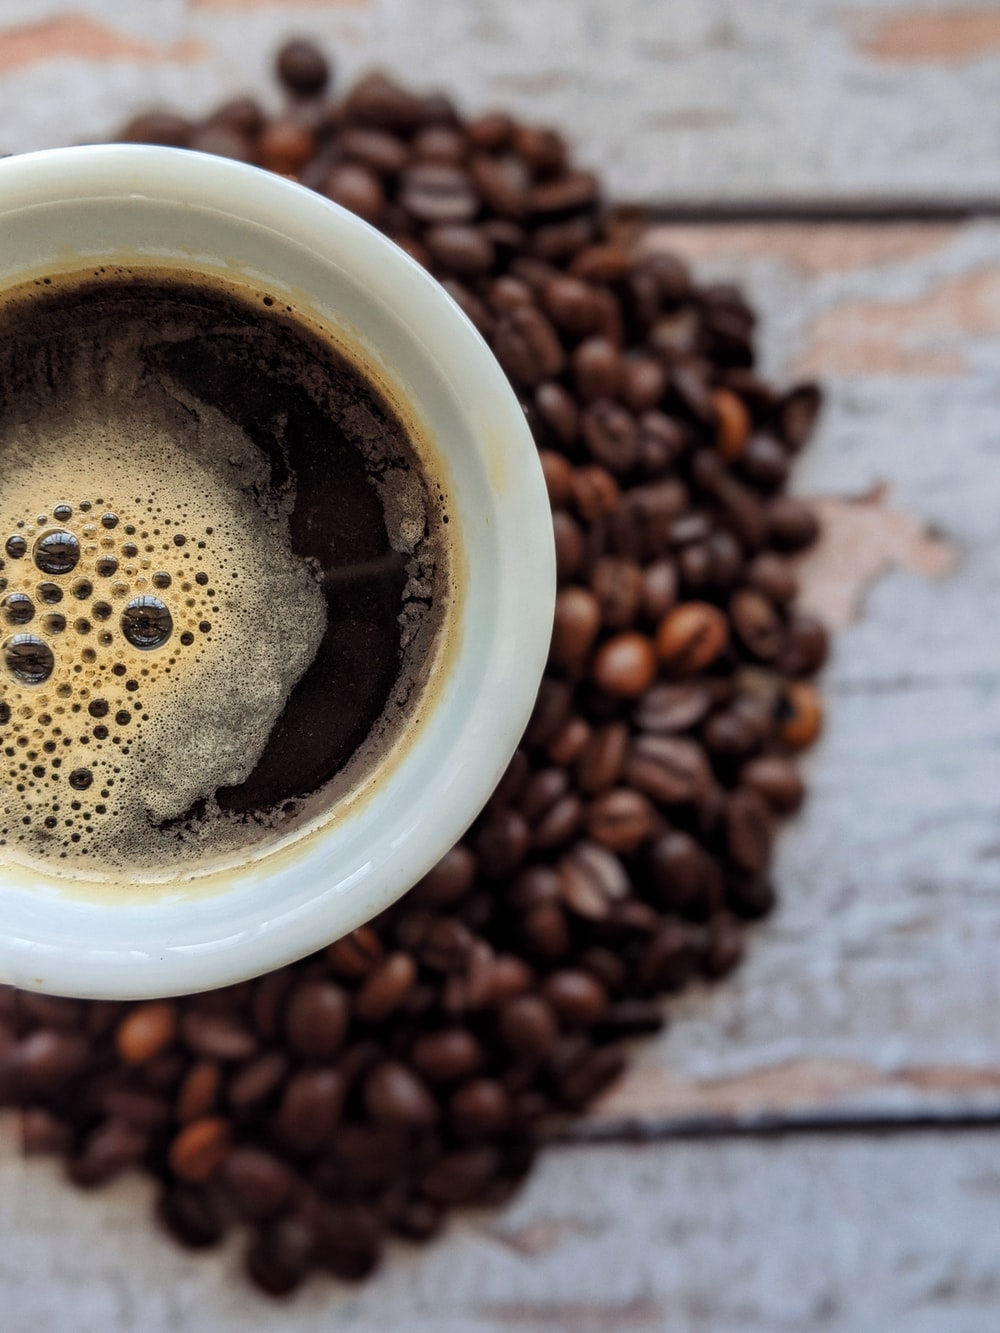 100 Hot Coffee Pictures Download Free Images Stock Photos On Unsplash